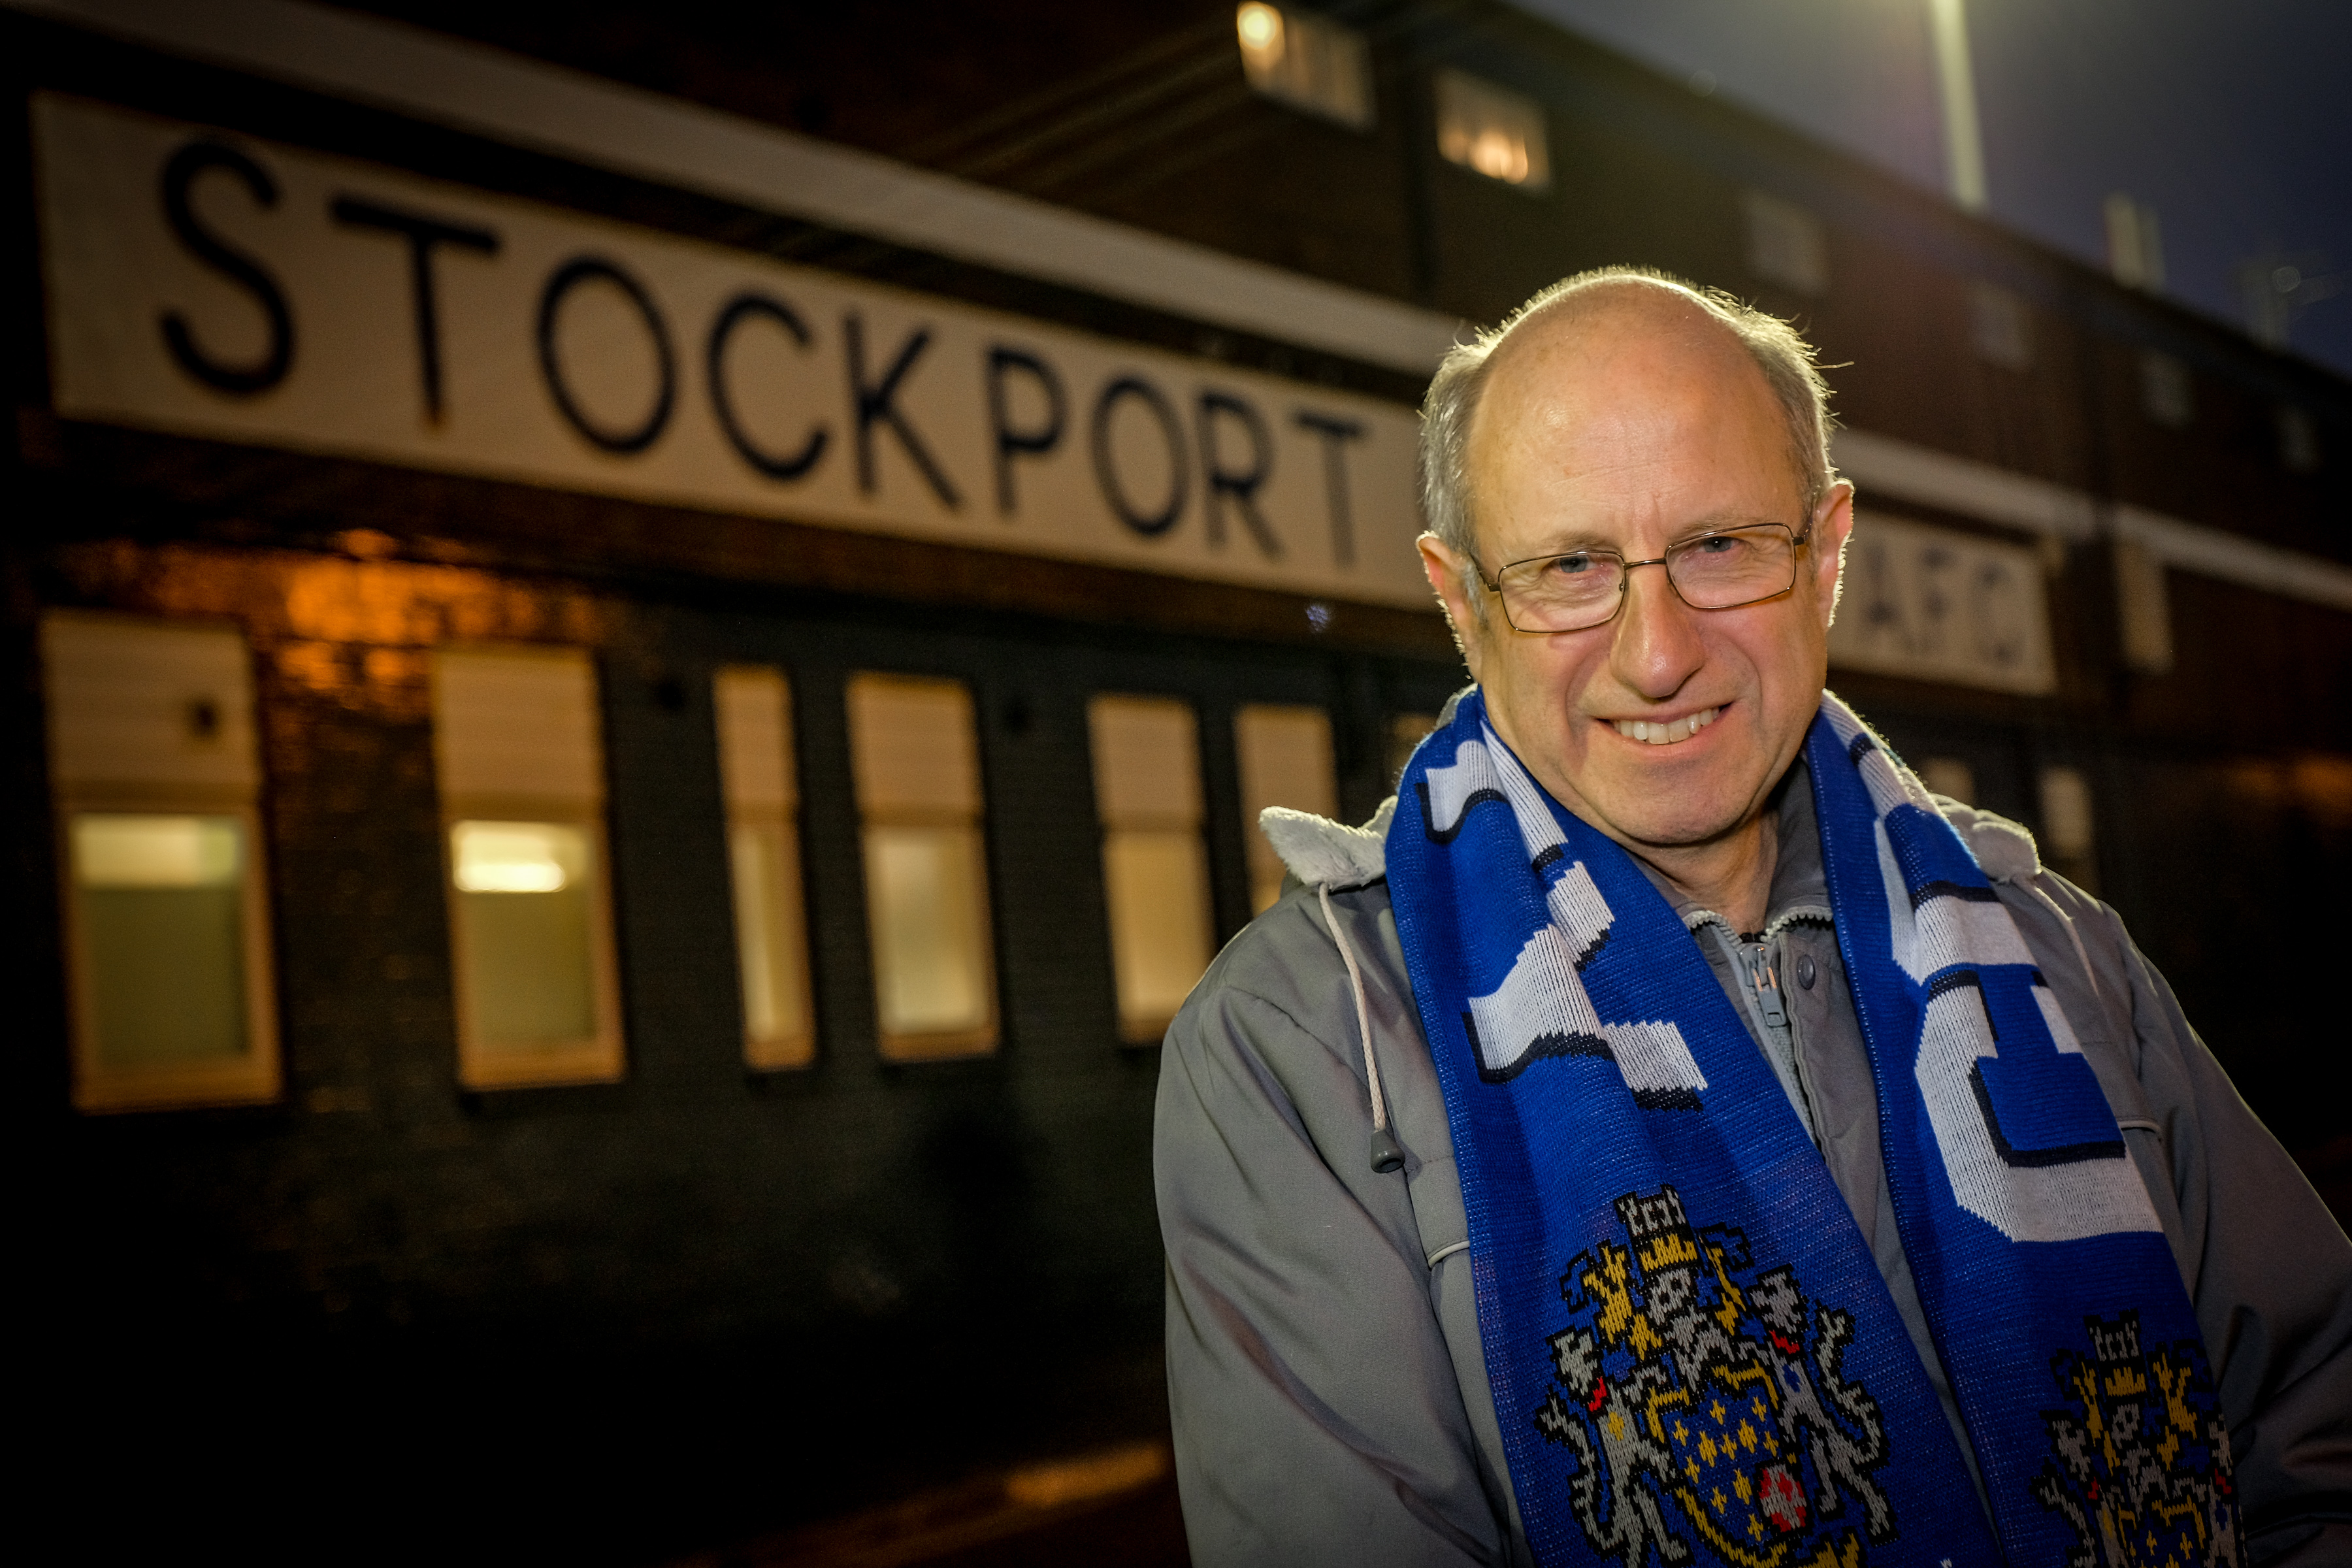 Steve outside Stockport Country's stadium